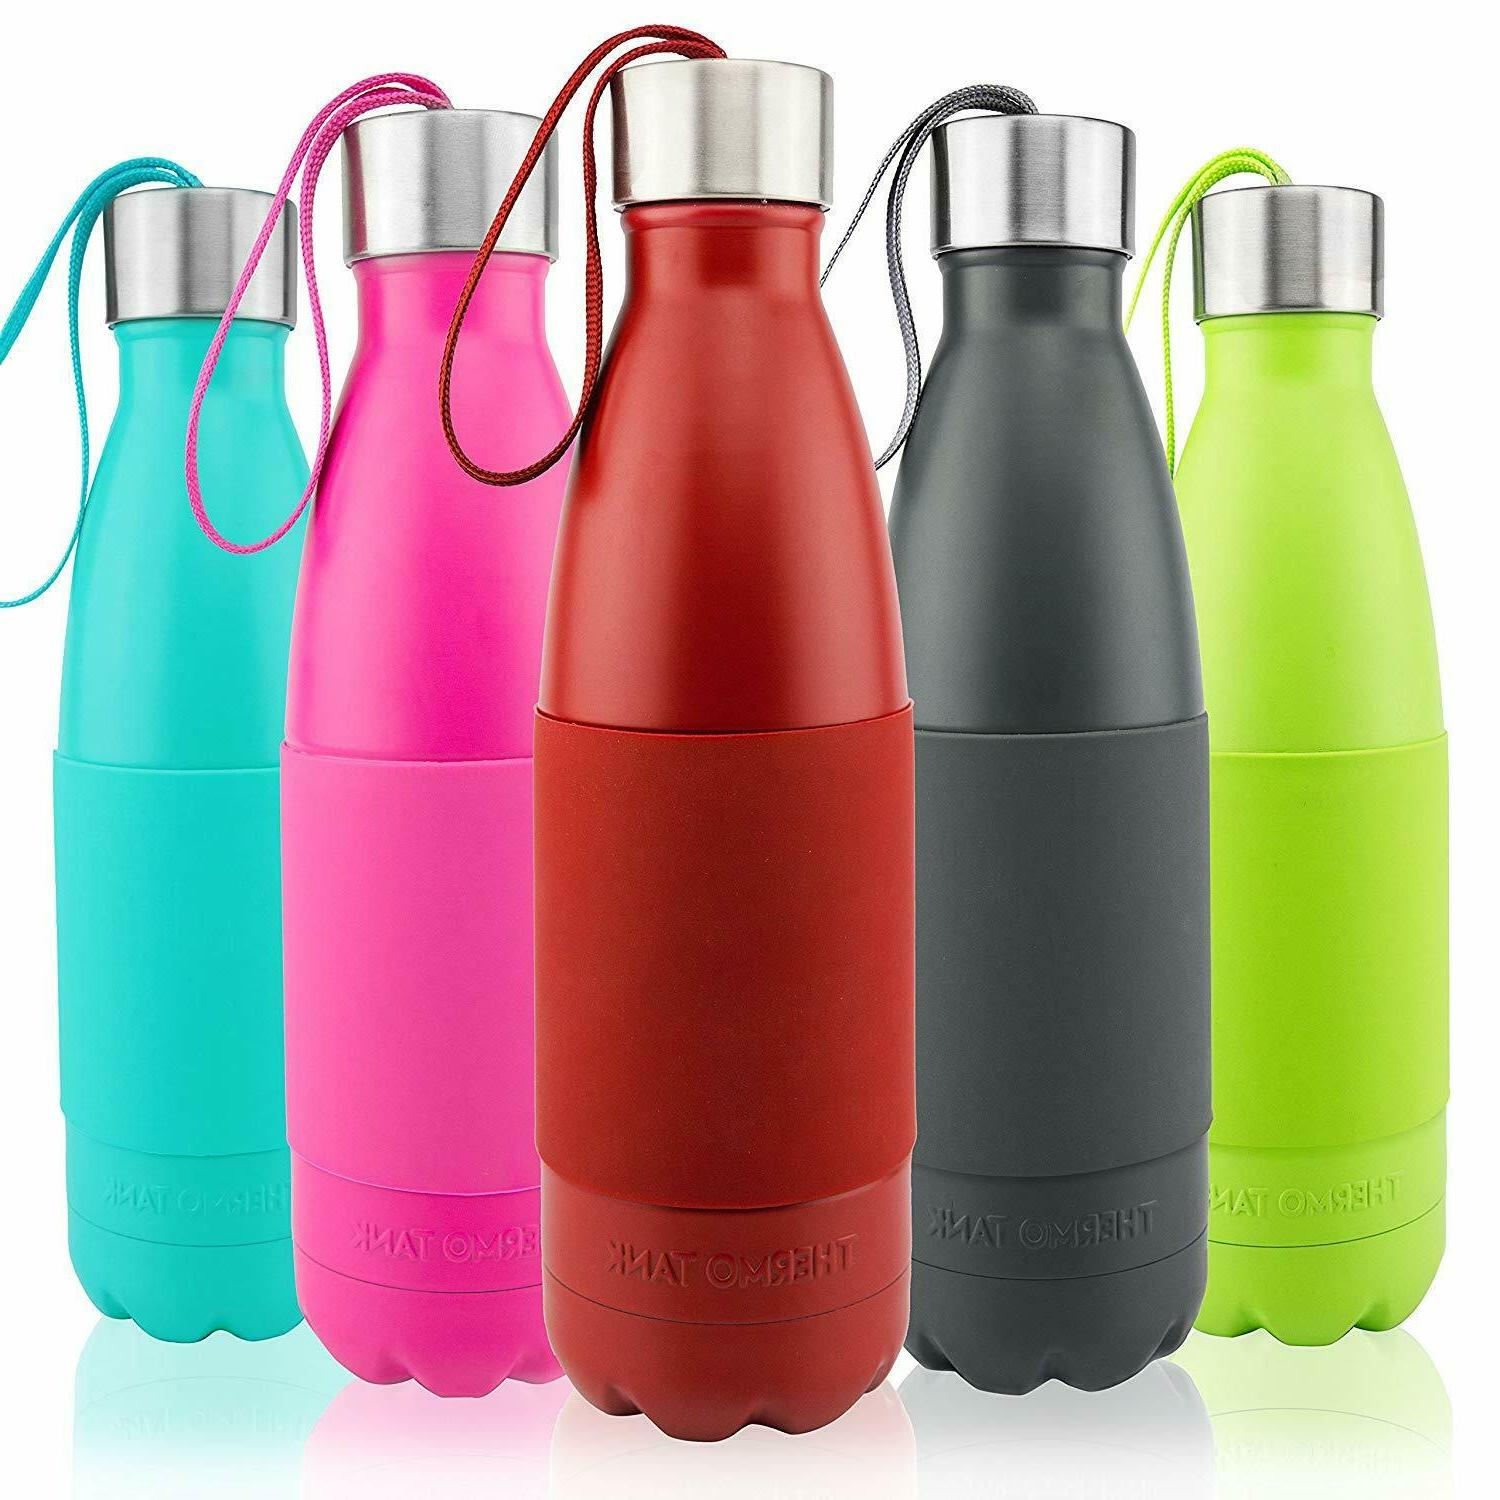 Thermo Tank Insulated Stainless Steel 17 oz Water Bottle, RE